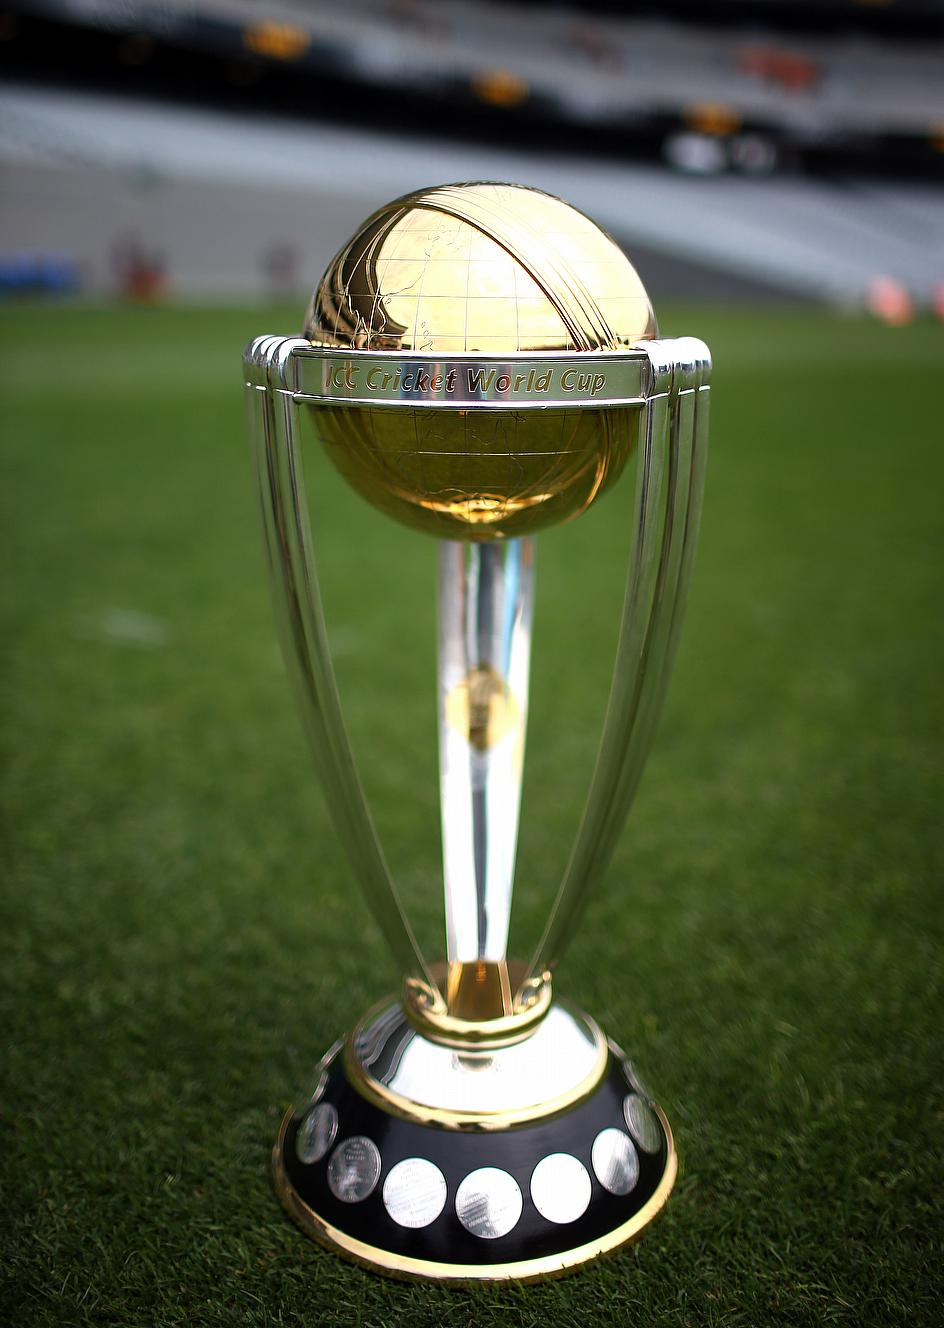 Icc Champions Trophy 2017 Hd Wallpaper World Cup Trophy To Visit Papua New Guinea